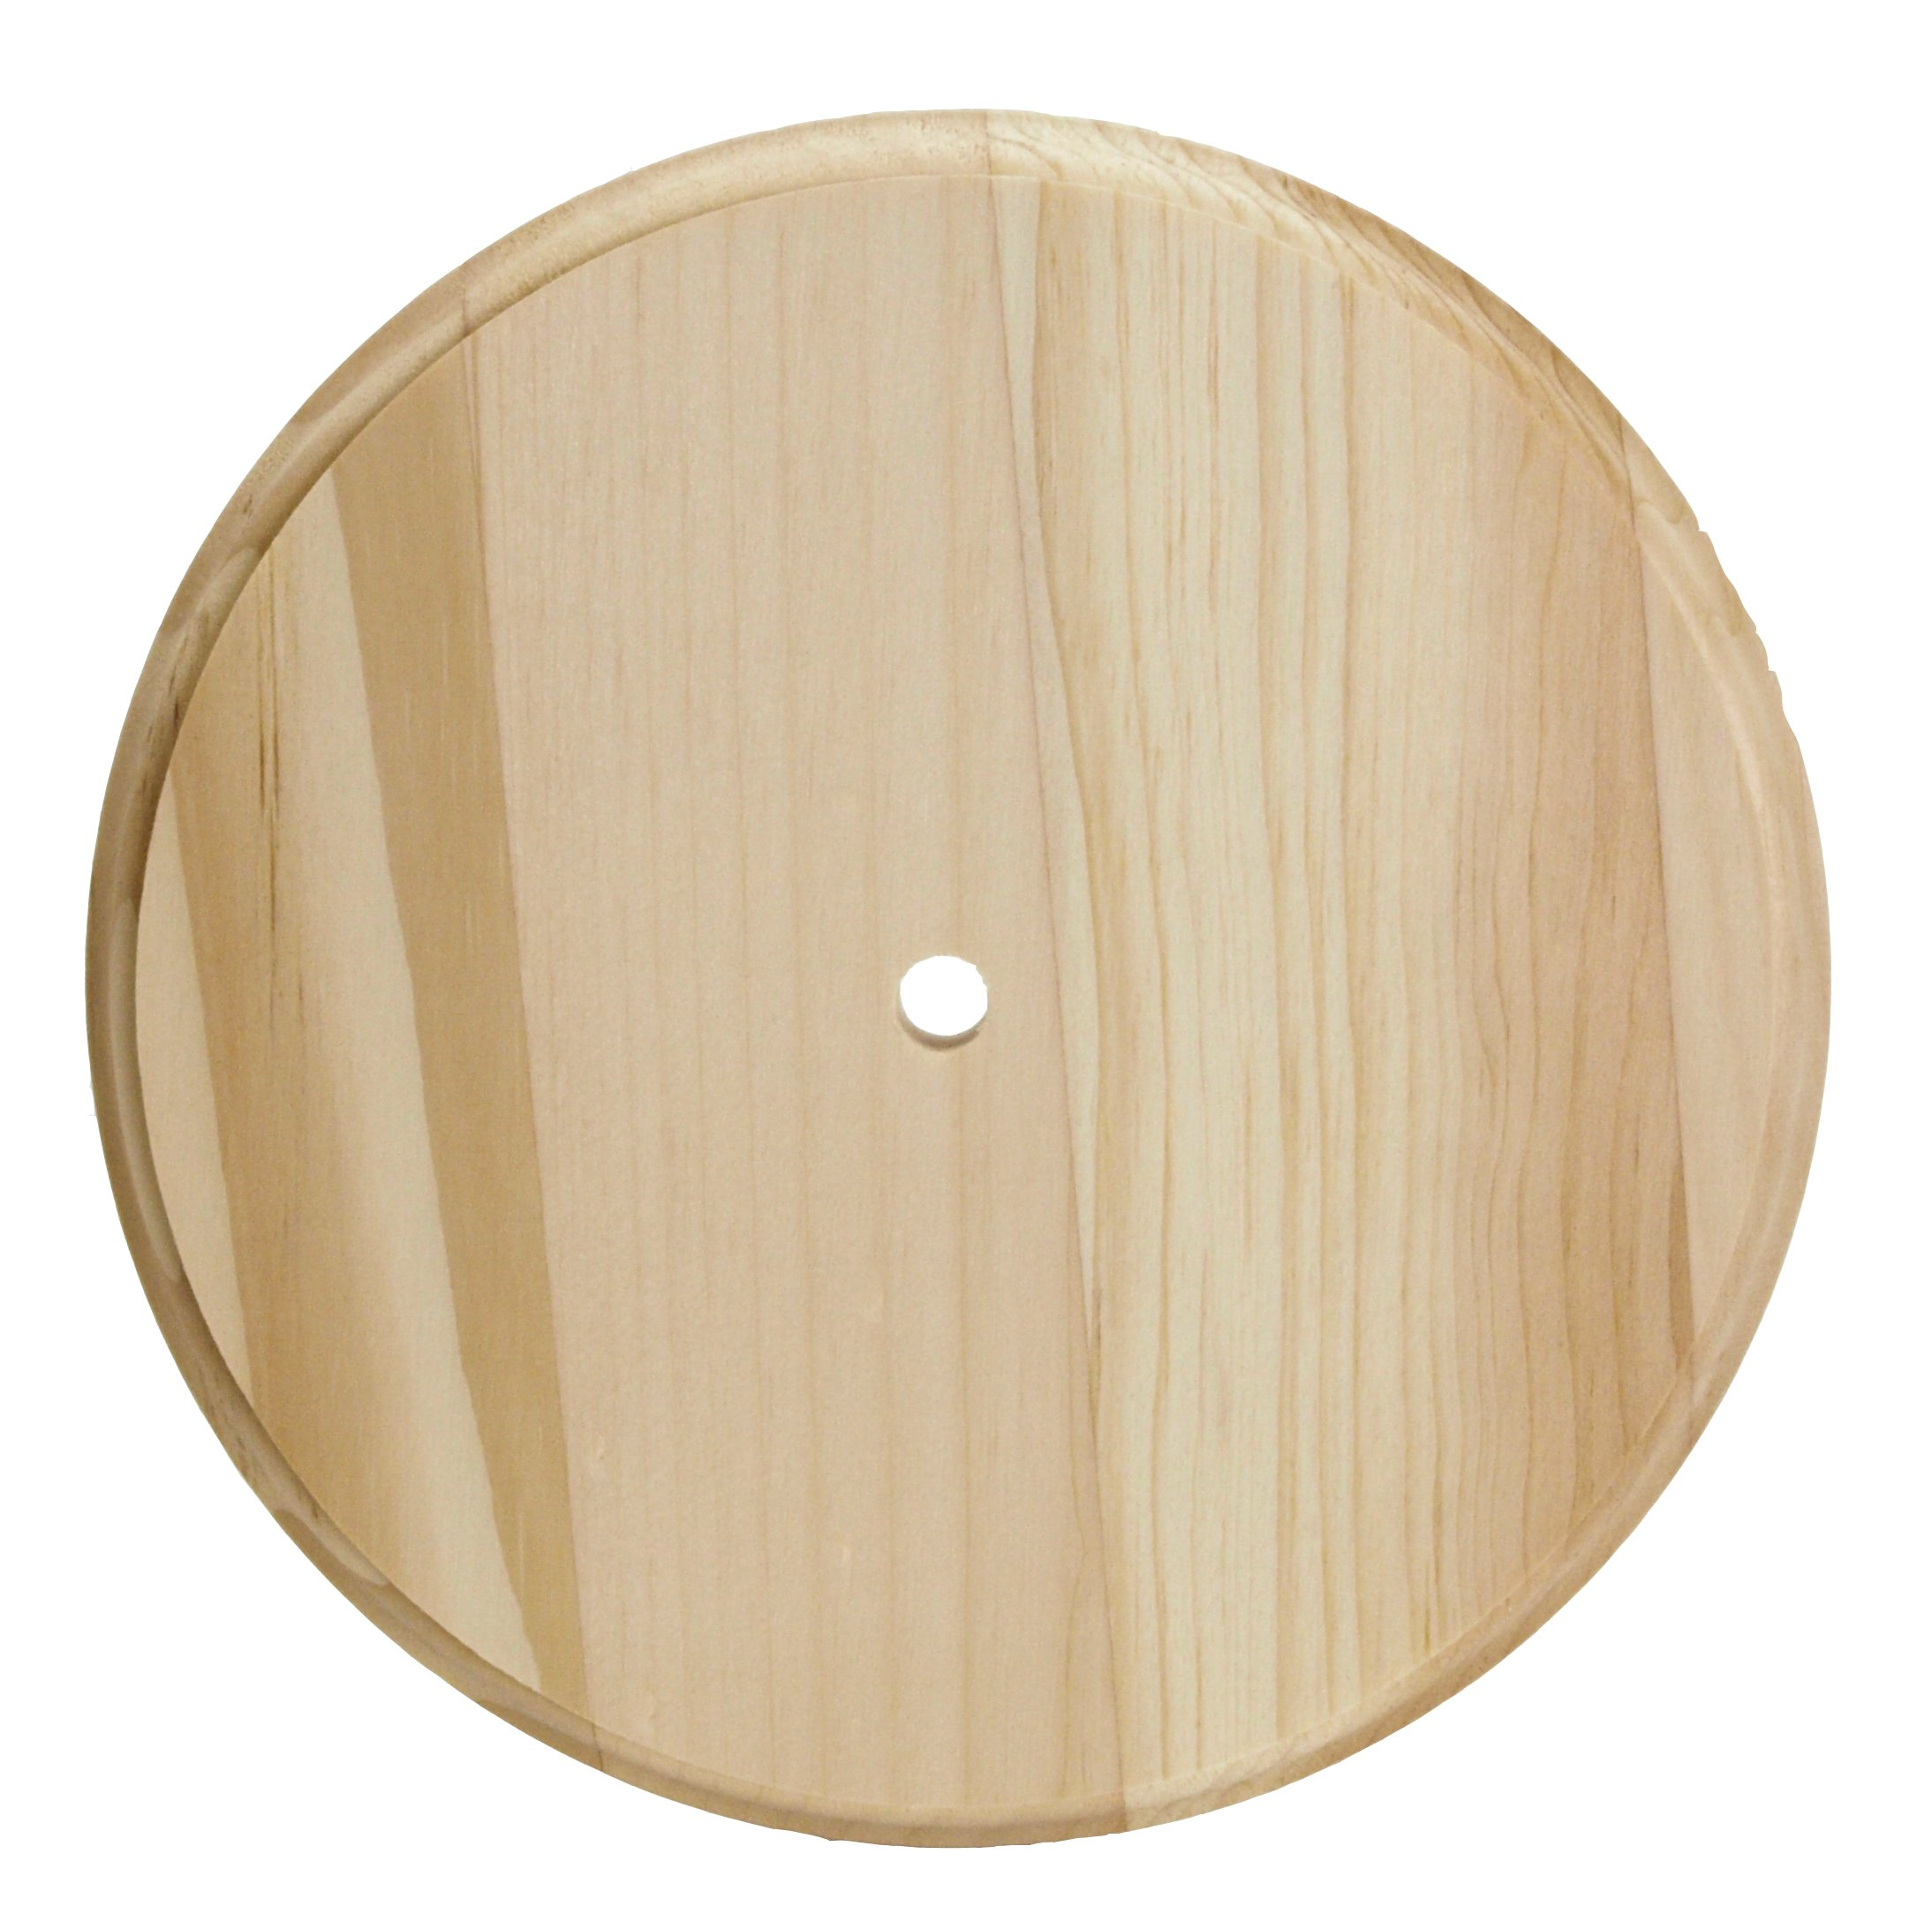 Walnut Hollow Wood Clock Plaque Round 6.75In, Multicolor